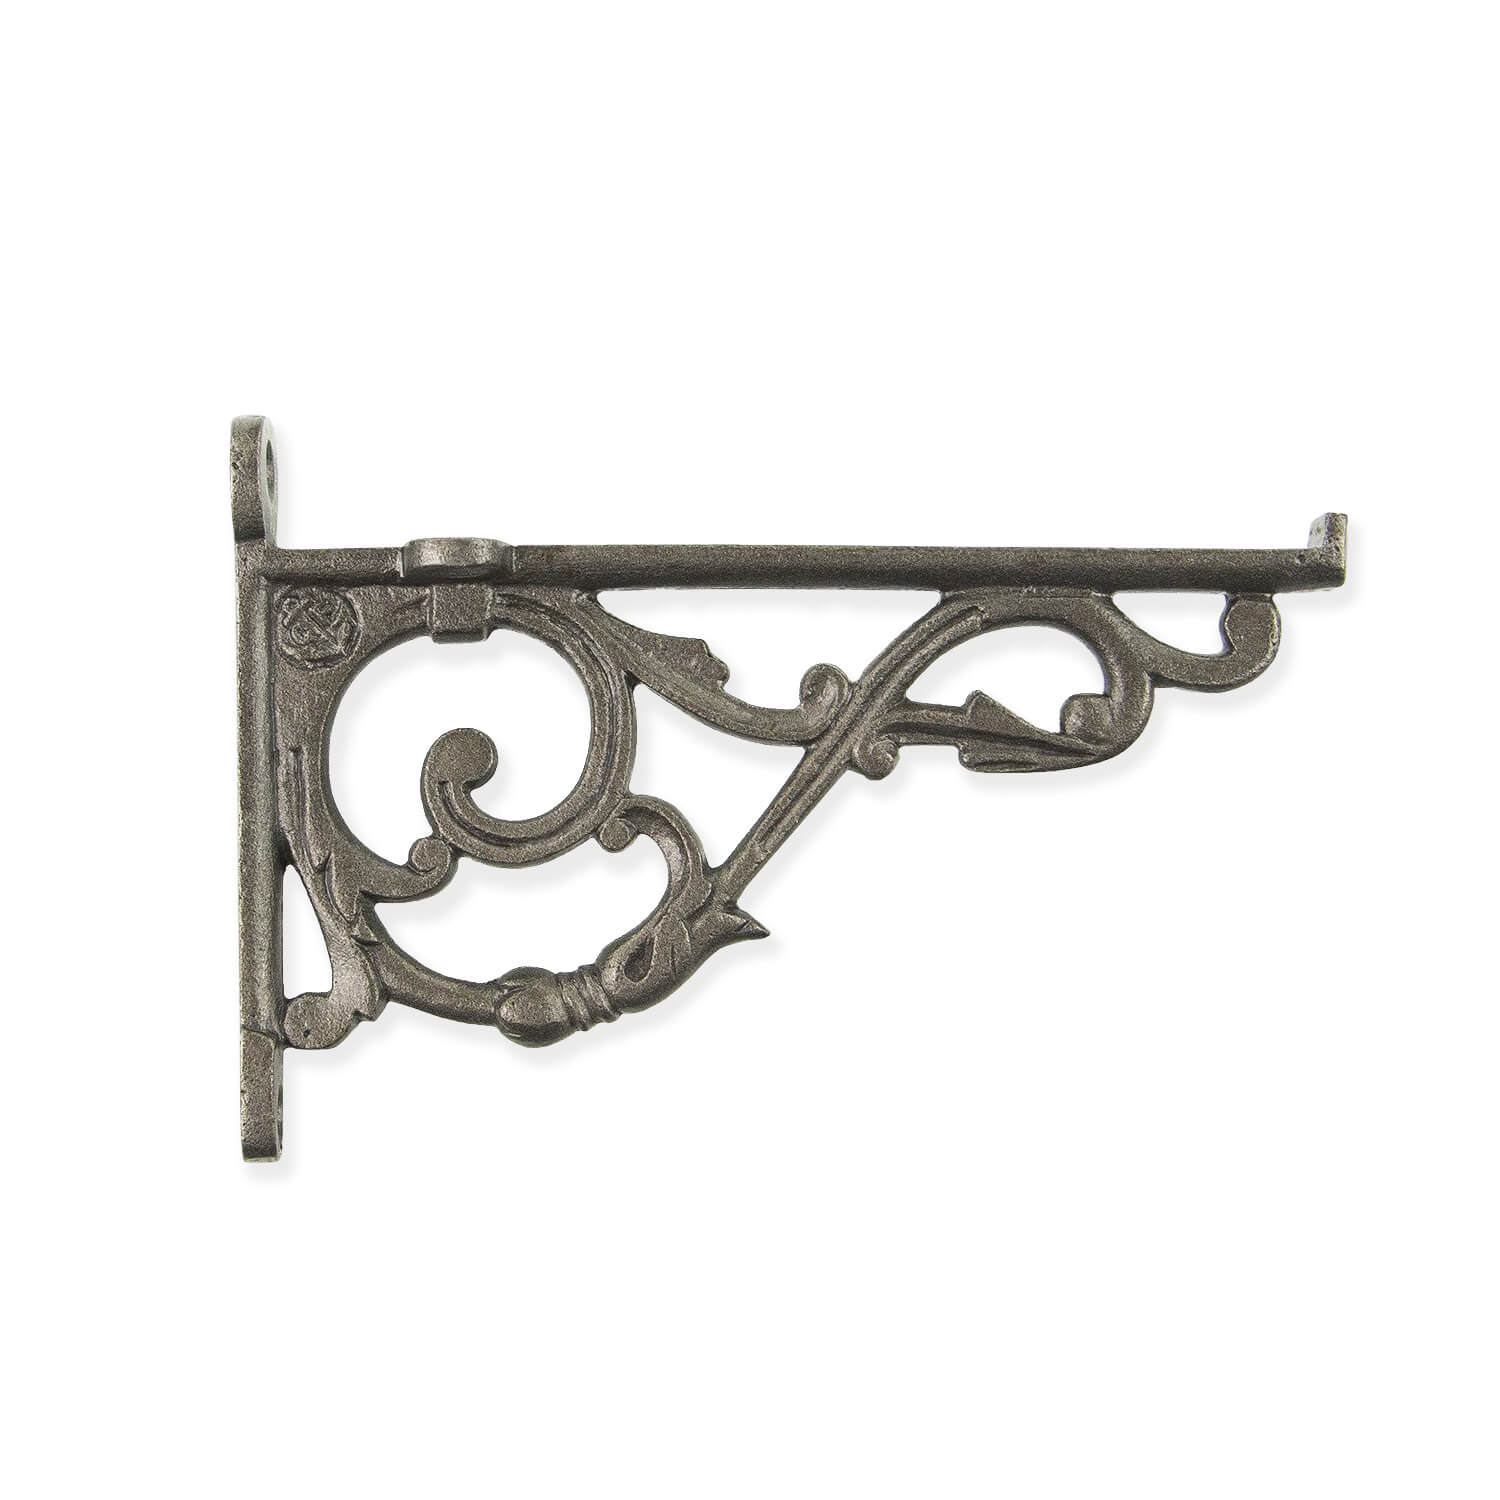 Anchor cast iron shelf bracket